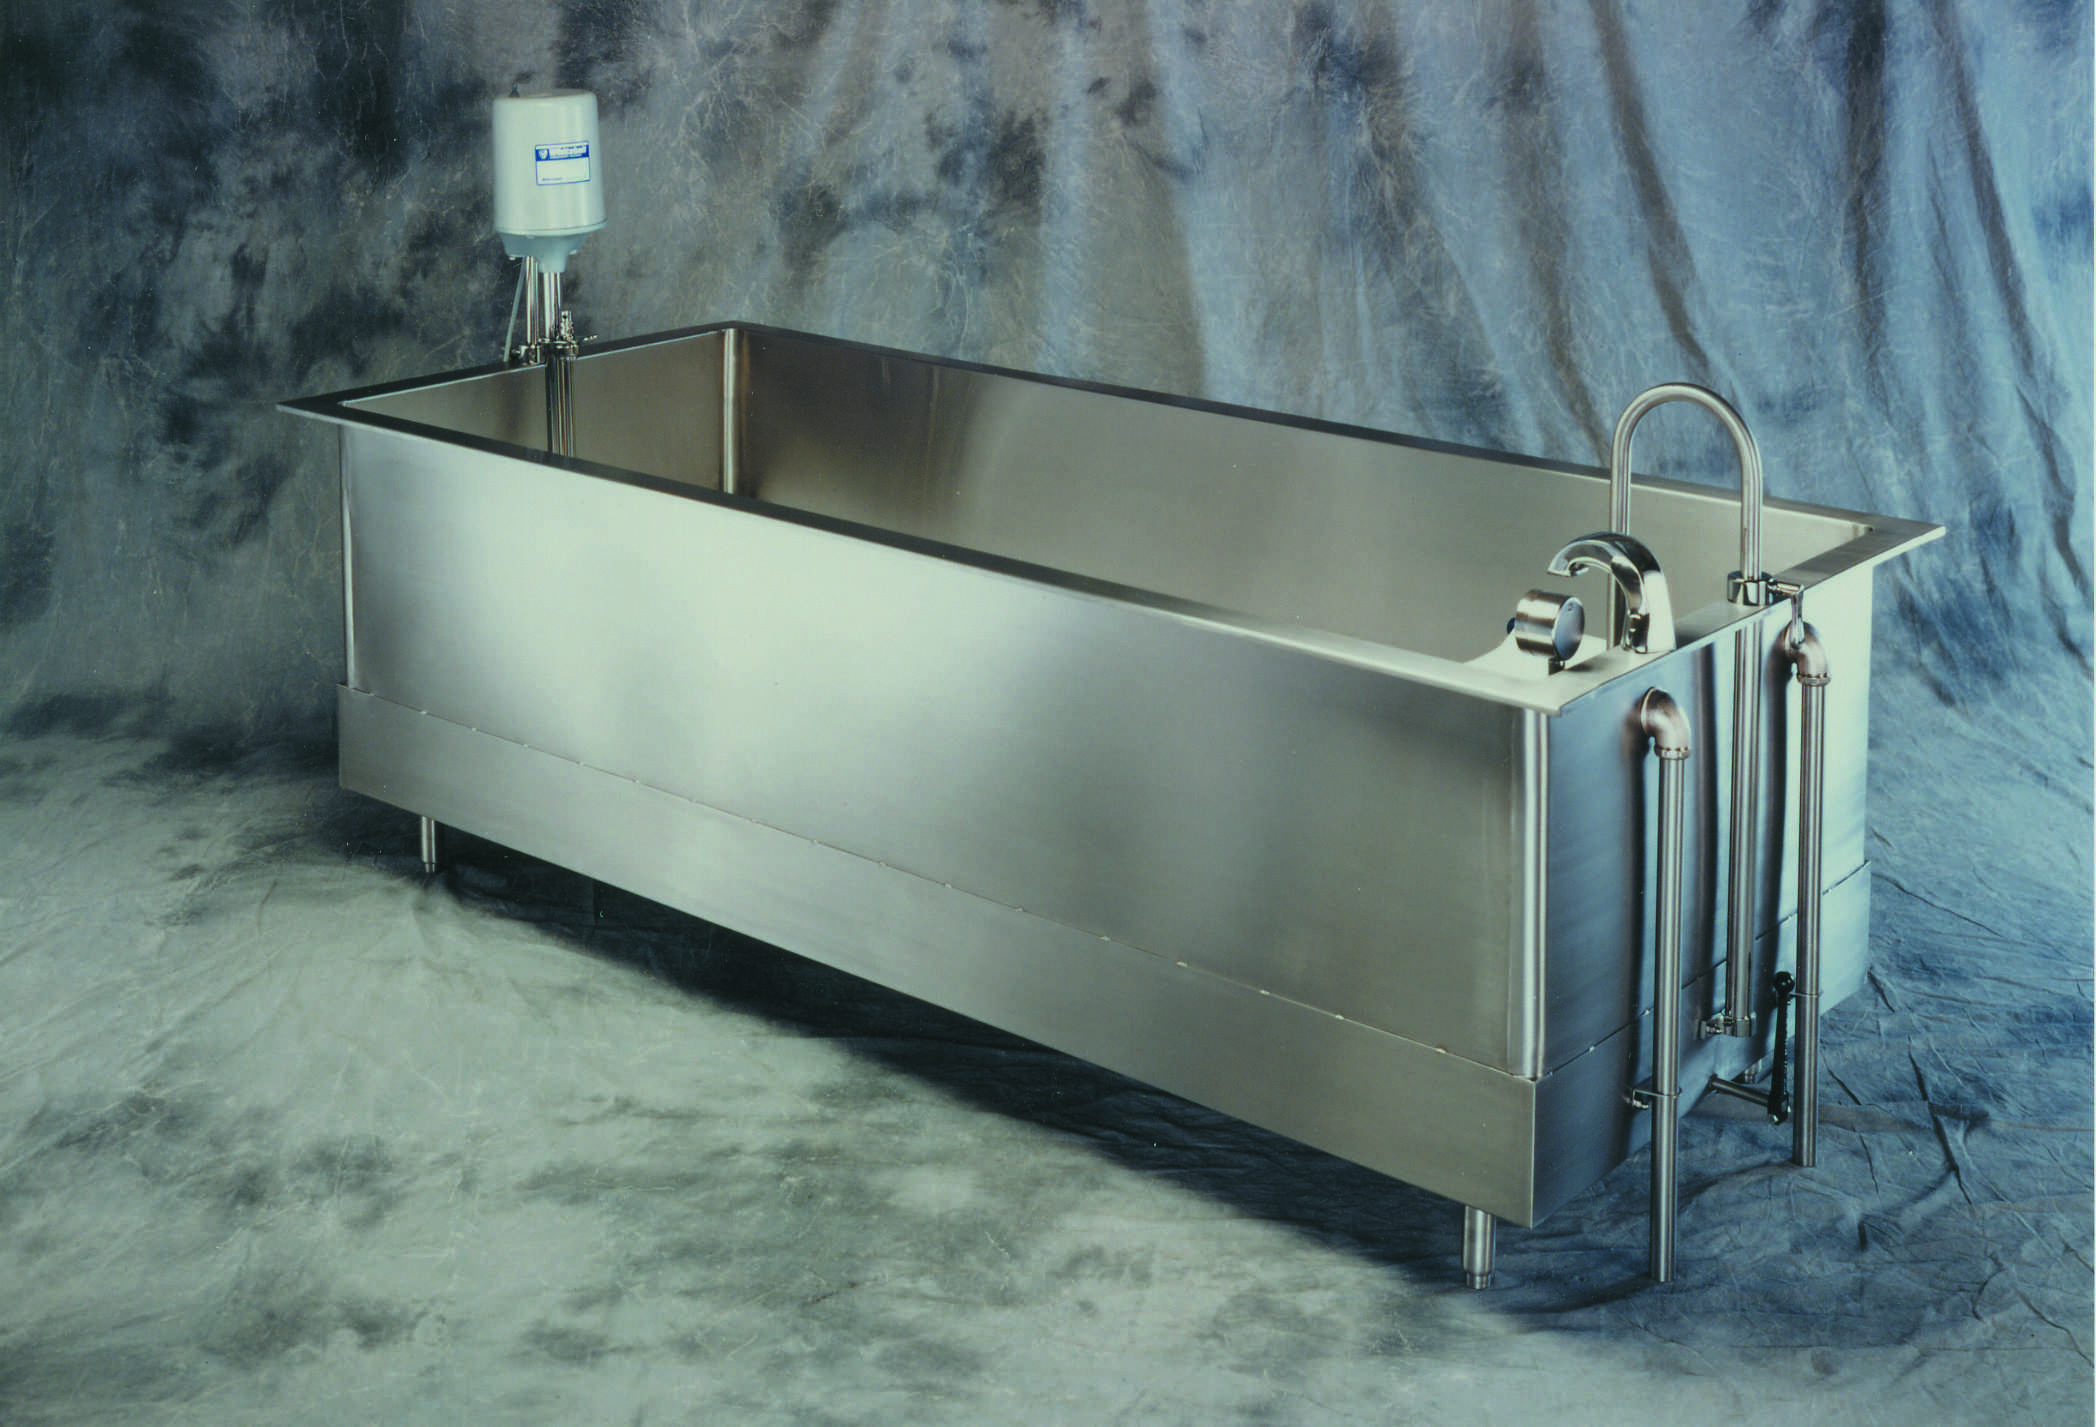 Whitehall Manufacturing Whirlpool Tub